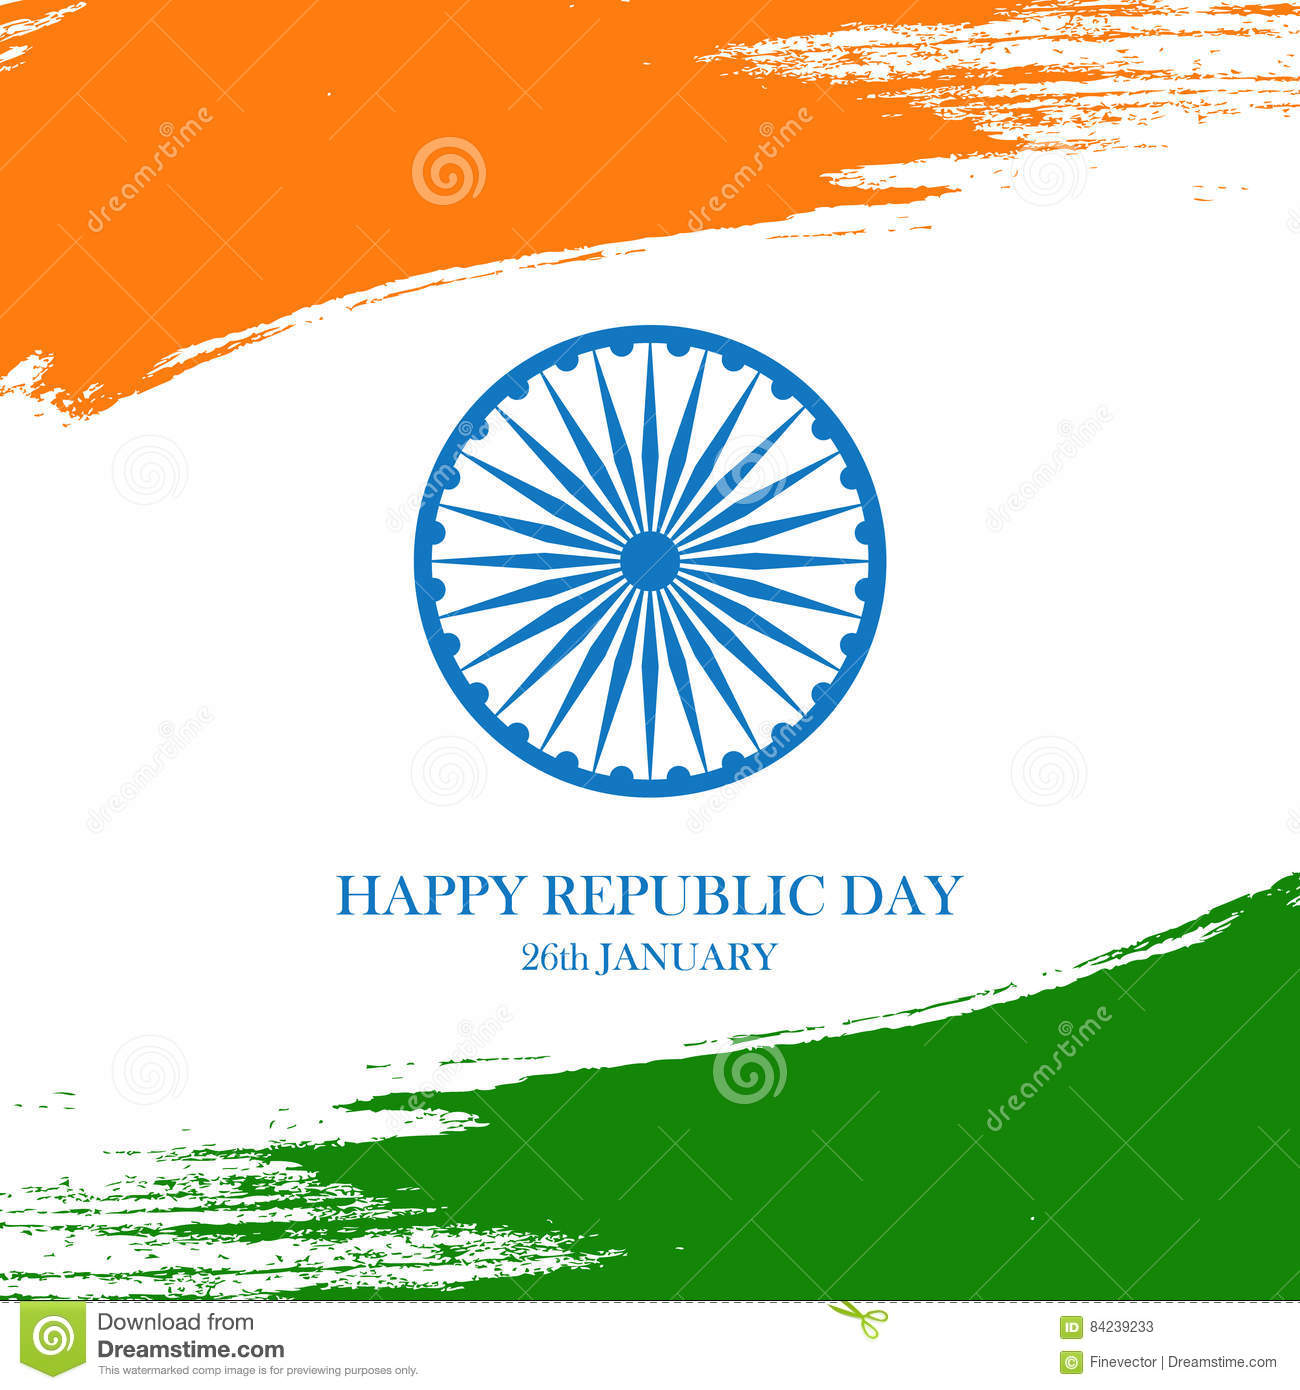 Indian happy republic day greeting card with ashoka wheel and brush download indian happy republic day greeting card with ashoka wheel and brush strokes in the colors m4hsunfo